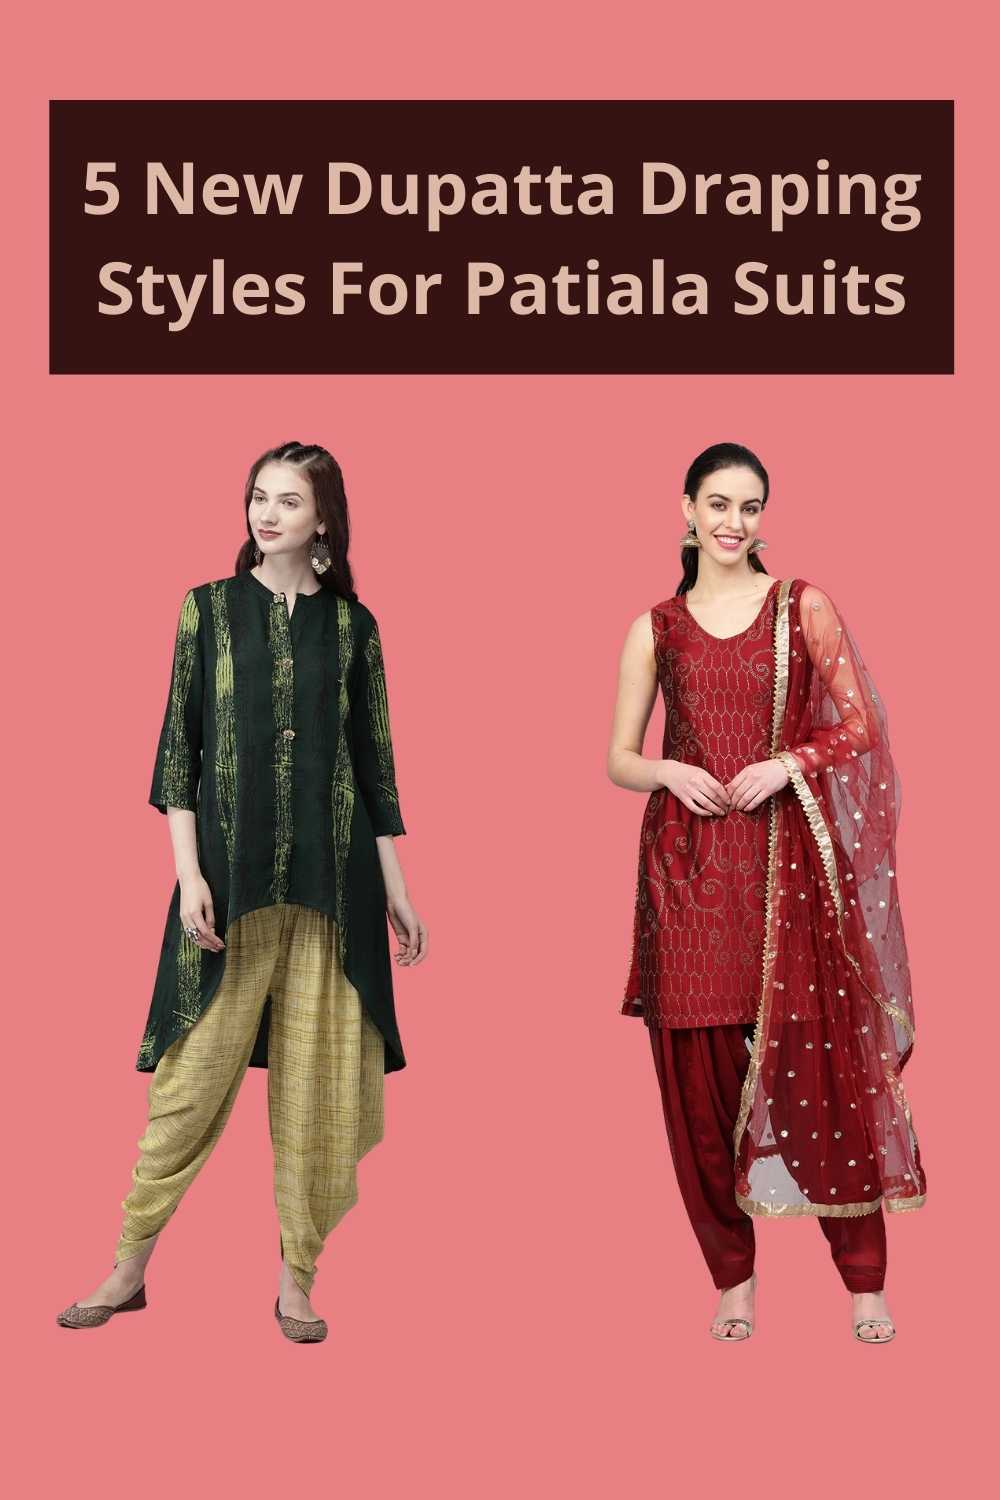 5 New Dupatta Draping Styles For Patiala Suits